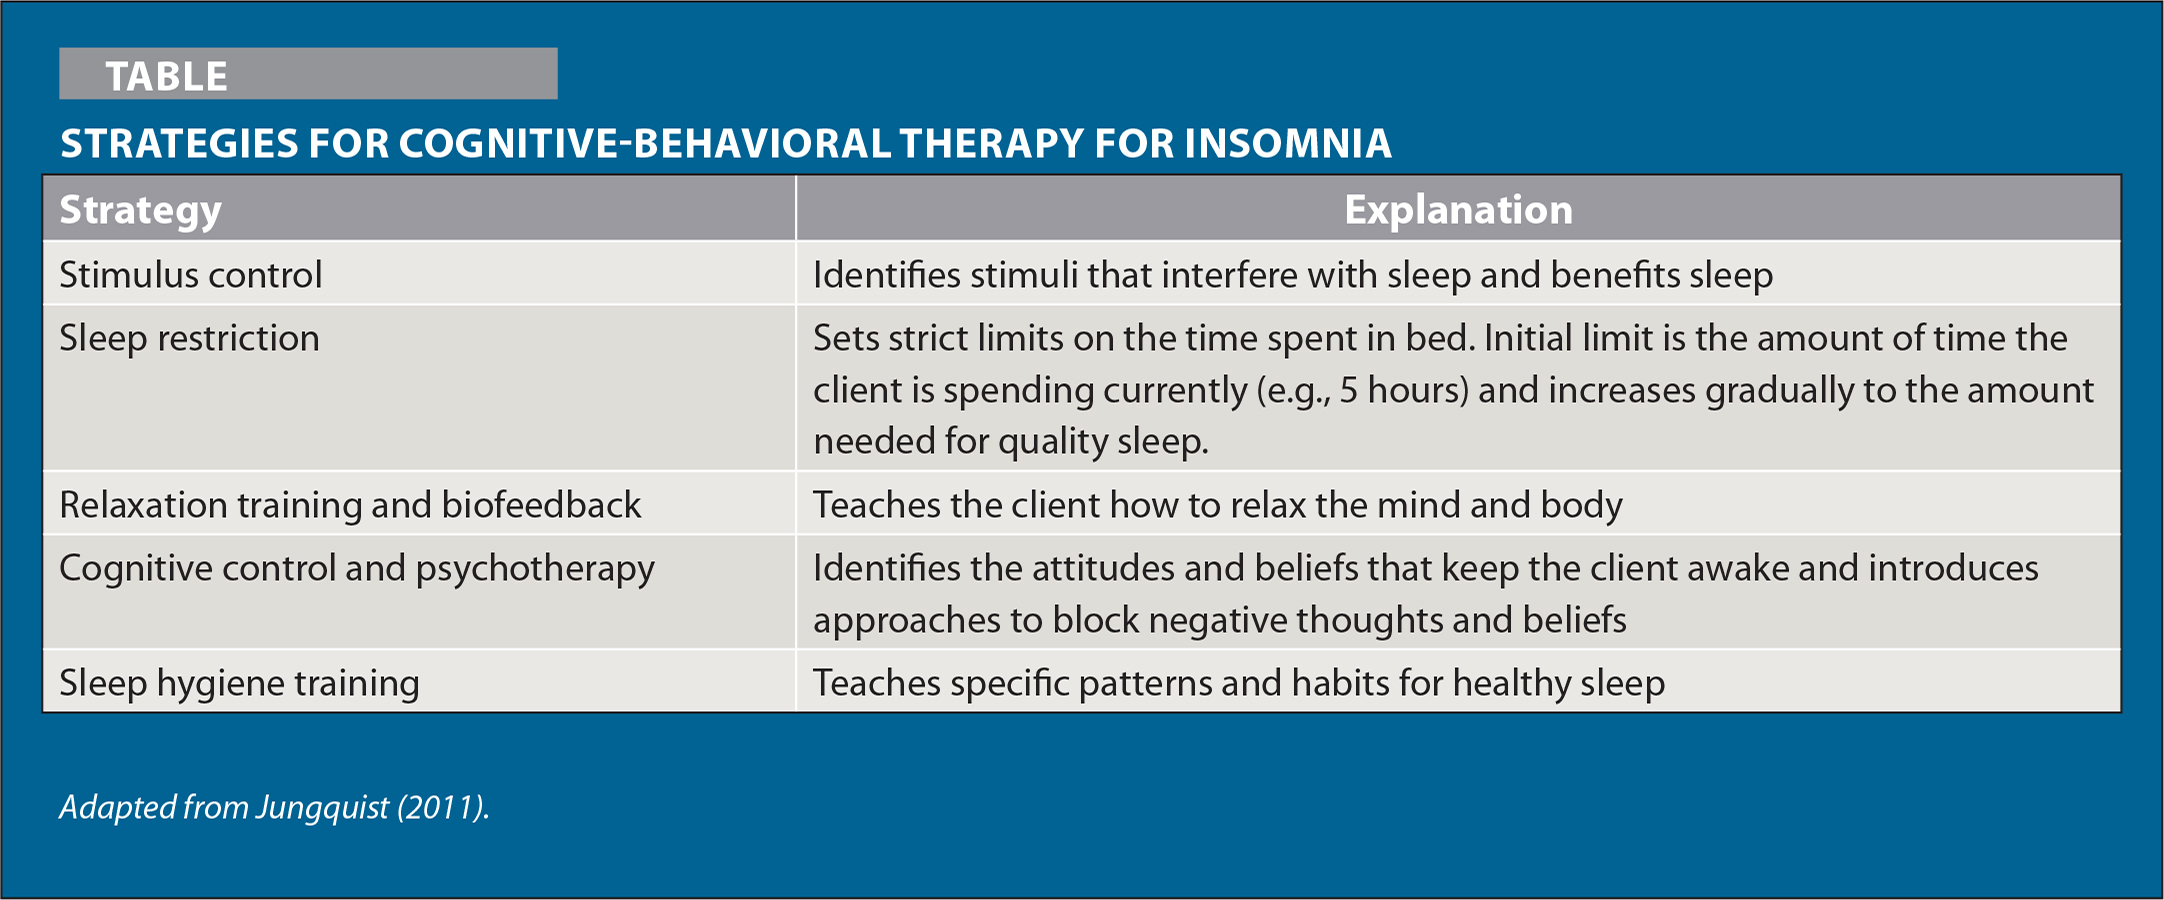 Strategies For Cognitive-Behavioral Therapy for Insomnia